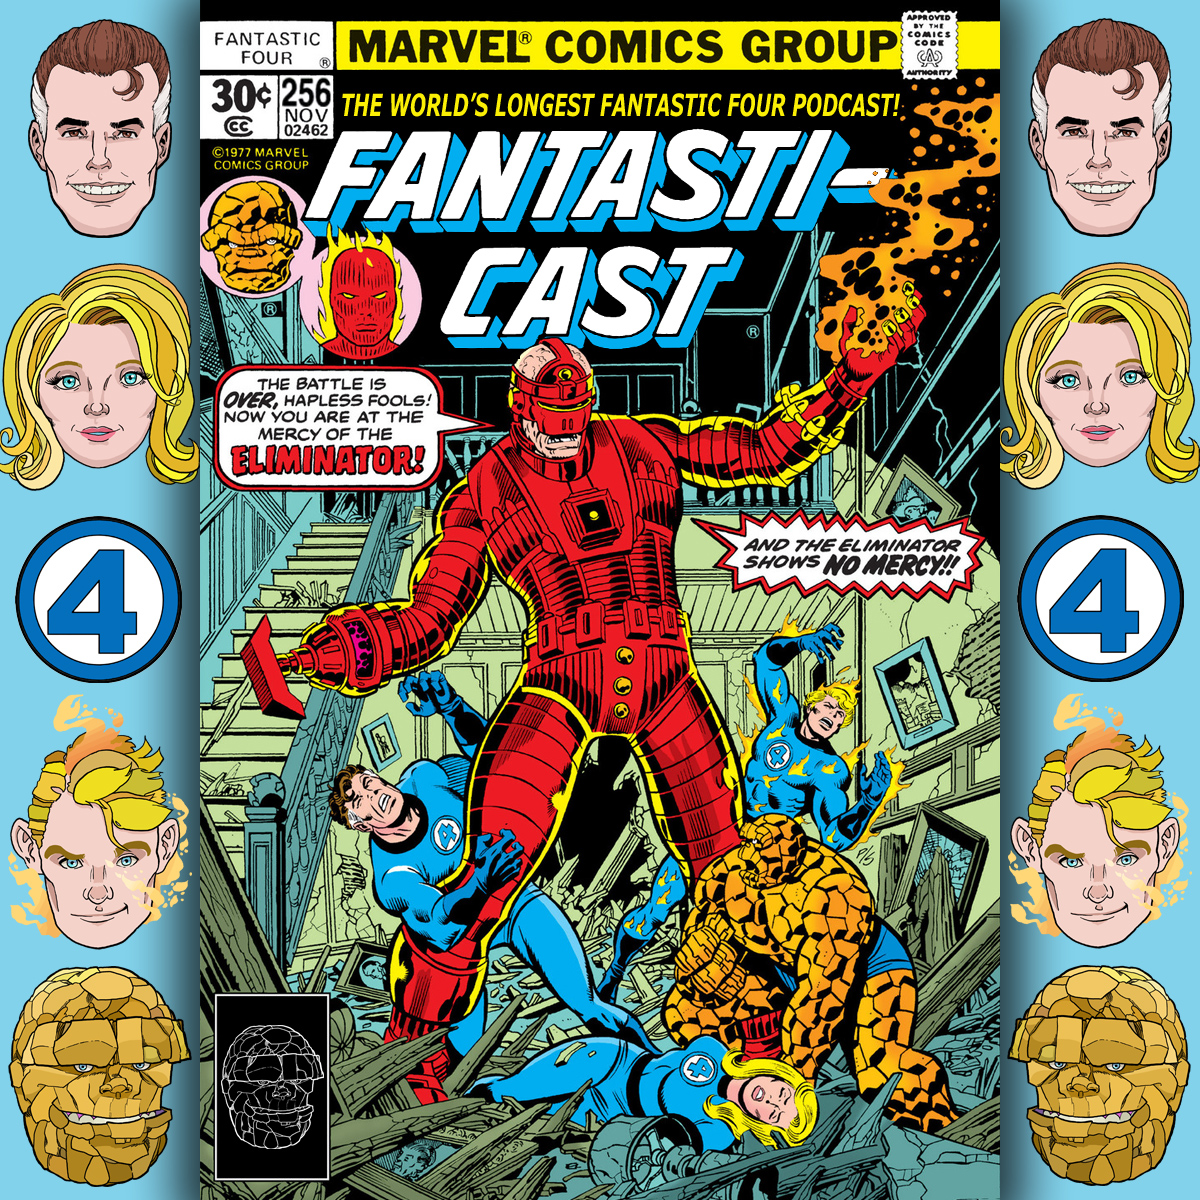 The Fantasticast Episode 256